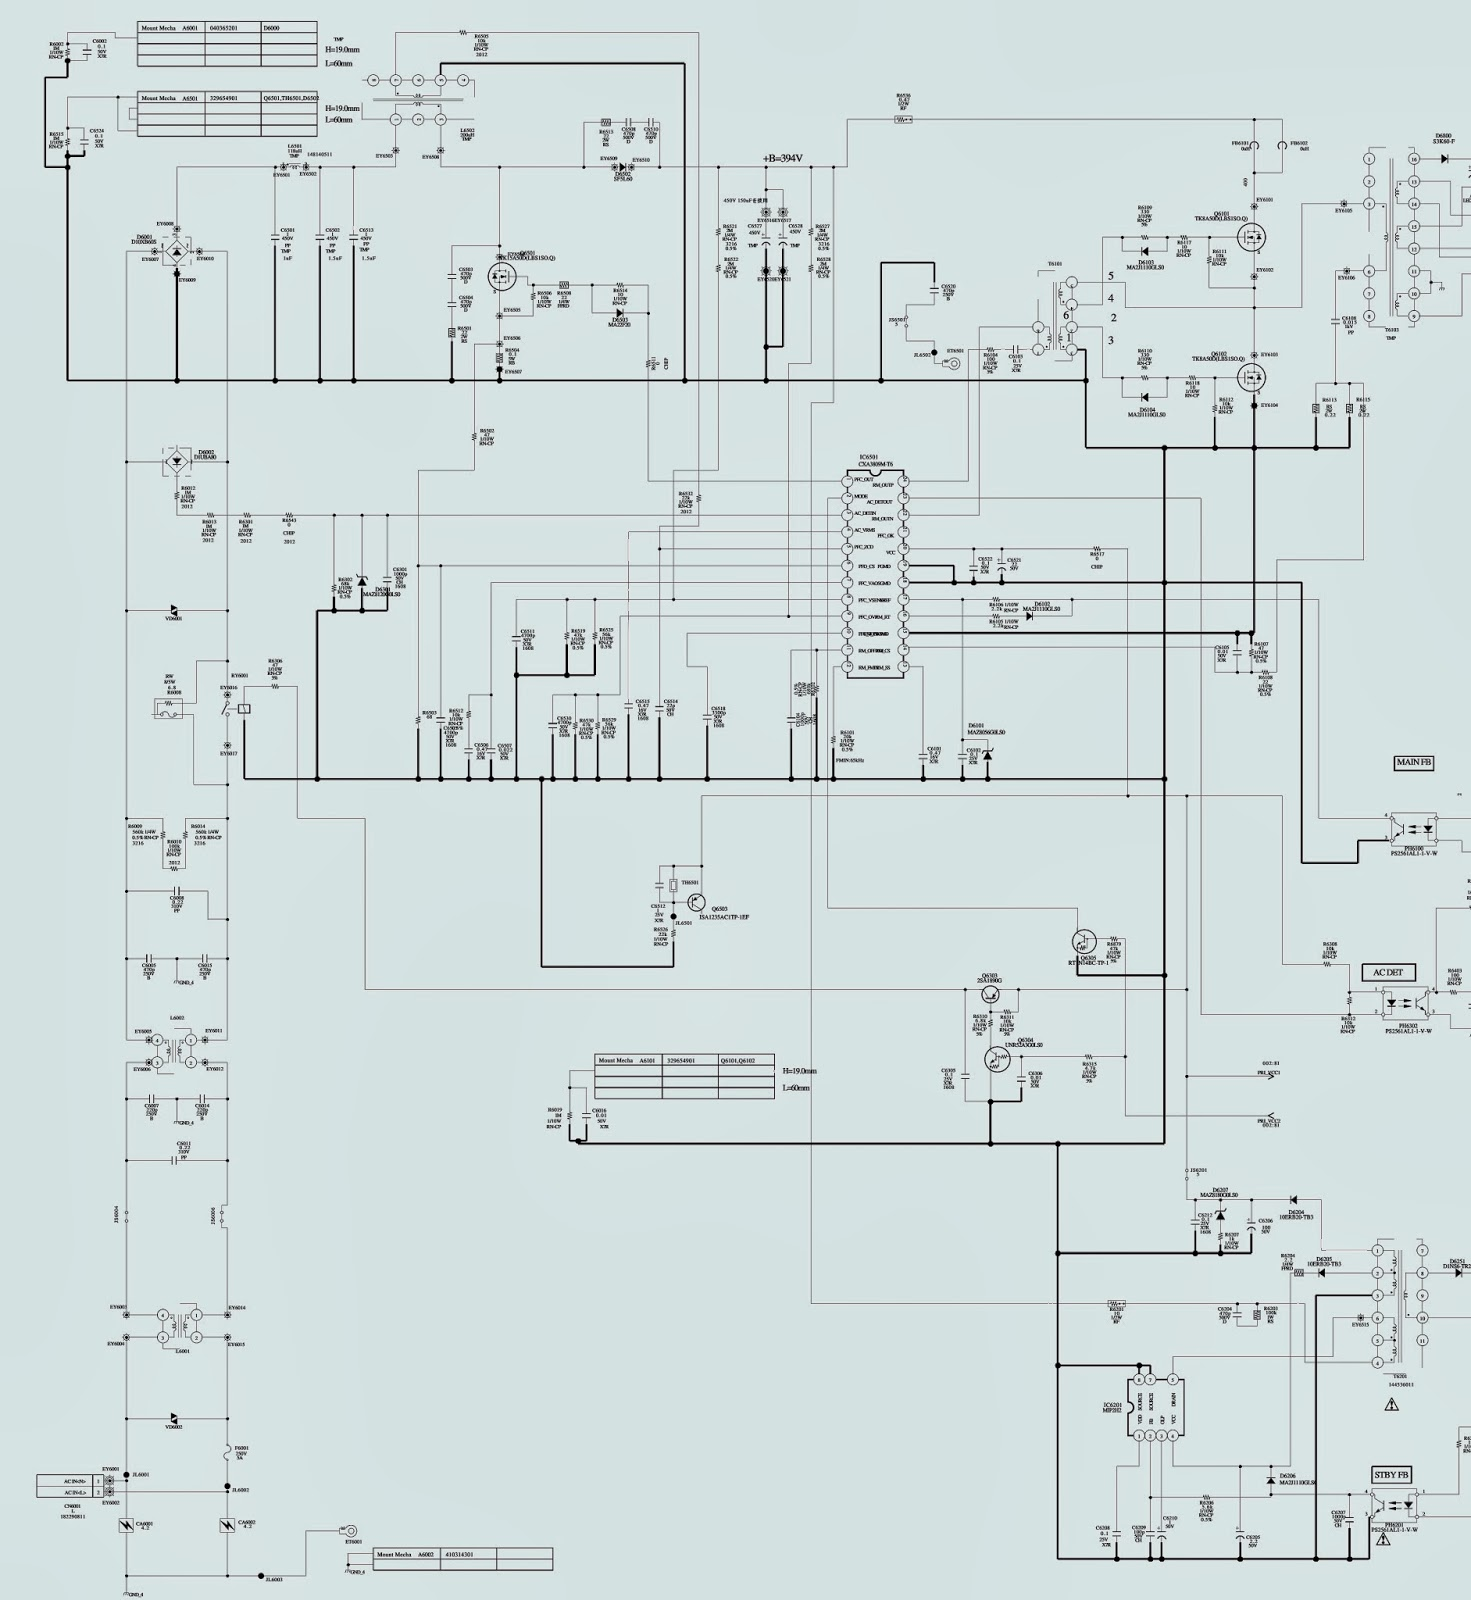 power supply wiring diagram dsl modem cable playstation 2